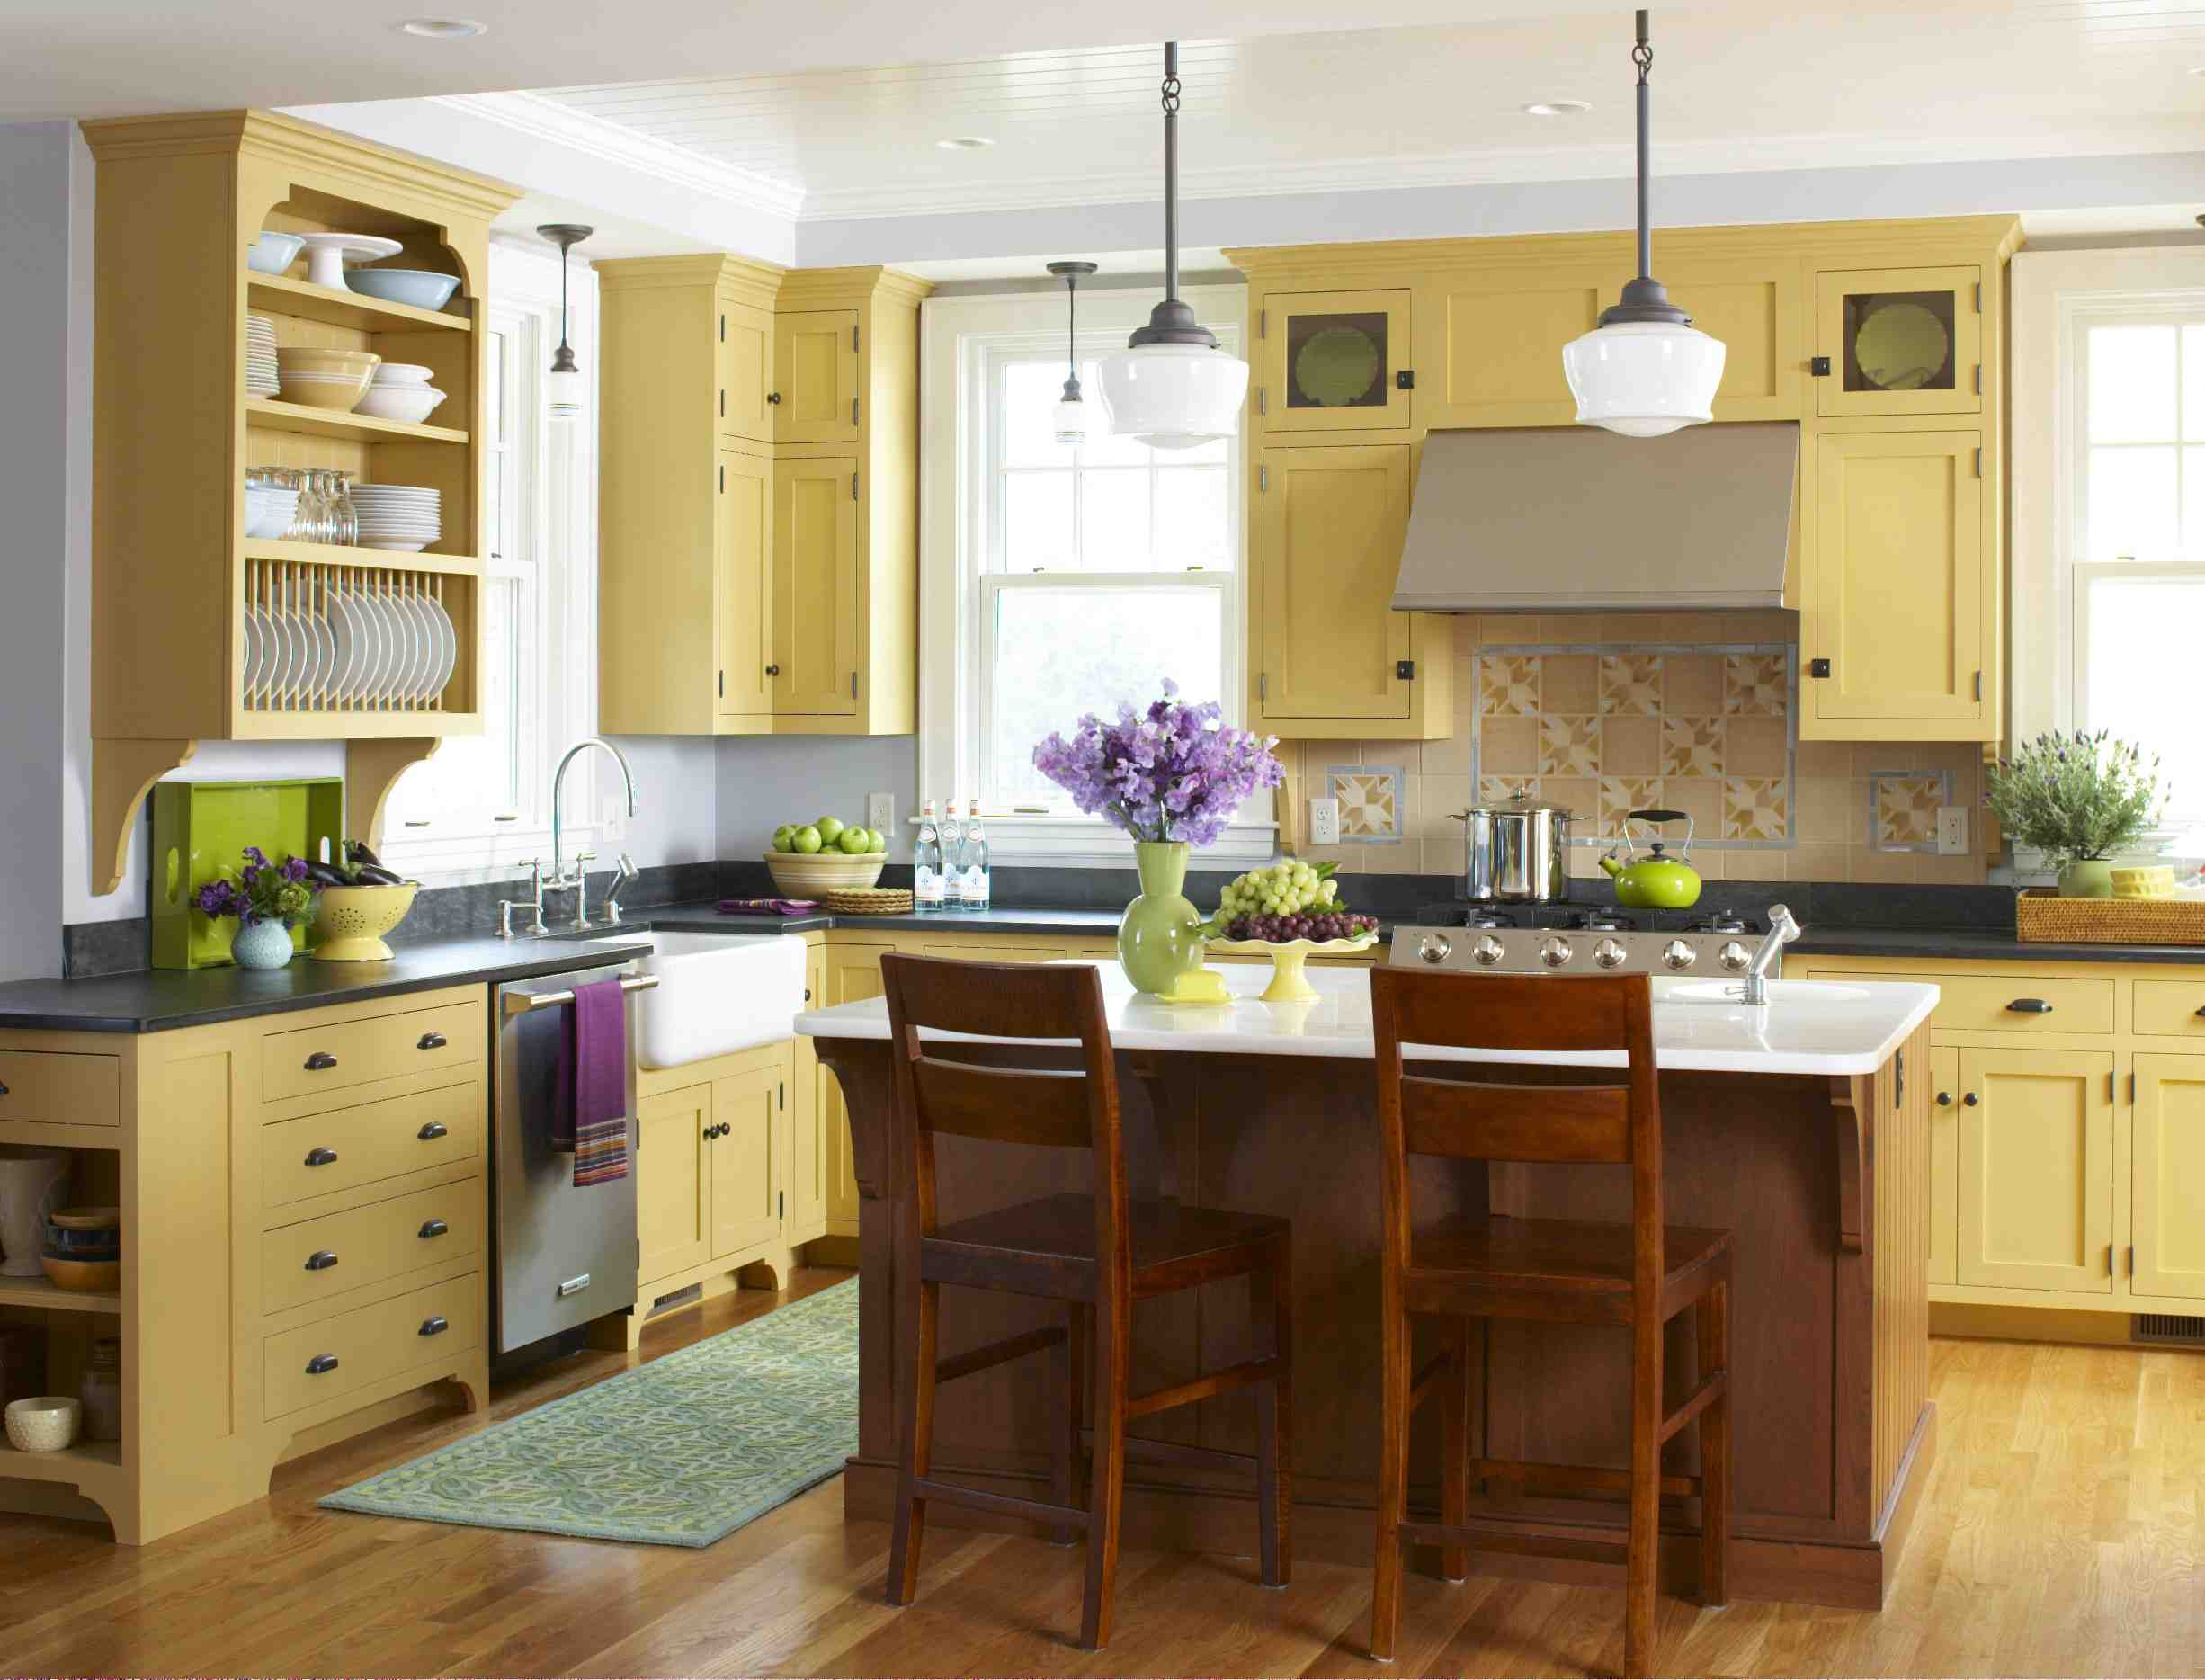 Kitchen Design Yellow Cabinets Style Archivemellow Yellow Kitchen Stacystyle 39s Blog